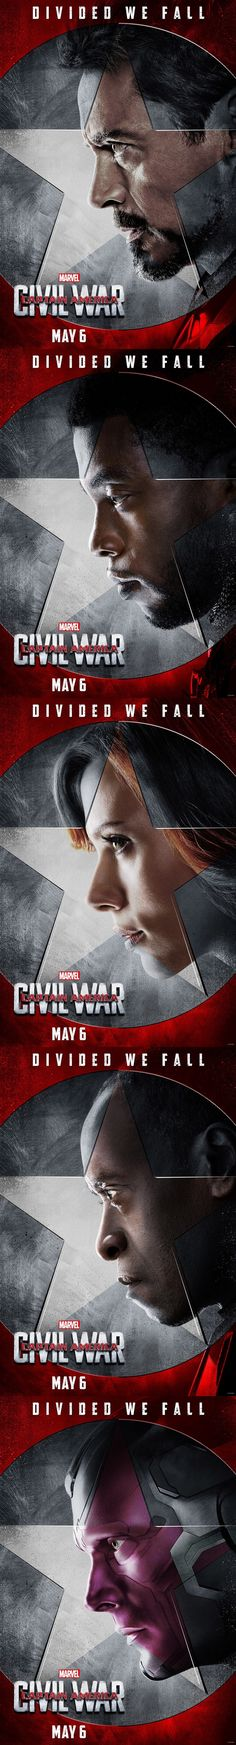 Captain America: Civil War Character Posters | TEAM IRON MAN.... I can't wait to go see this!!!!